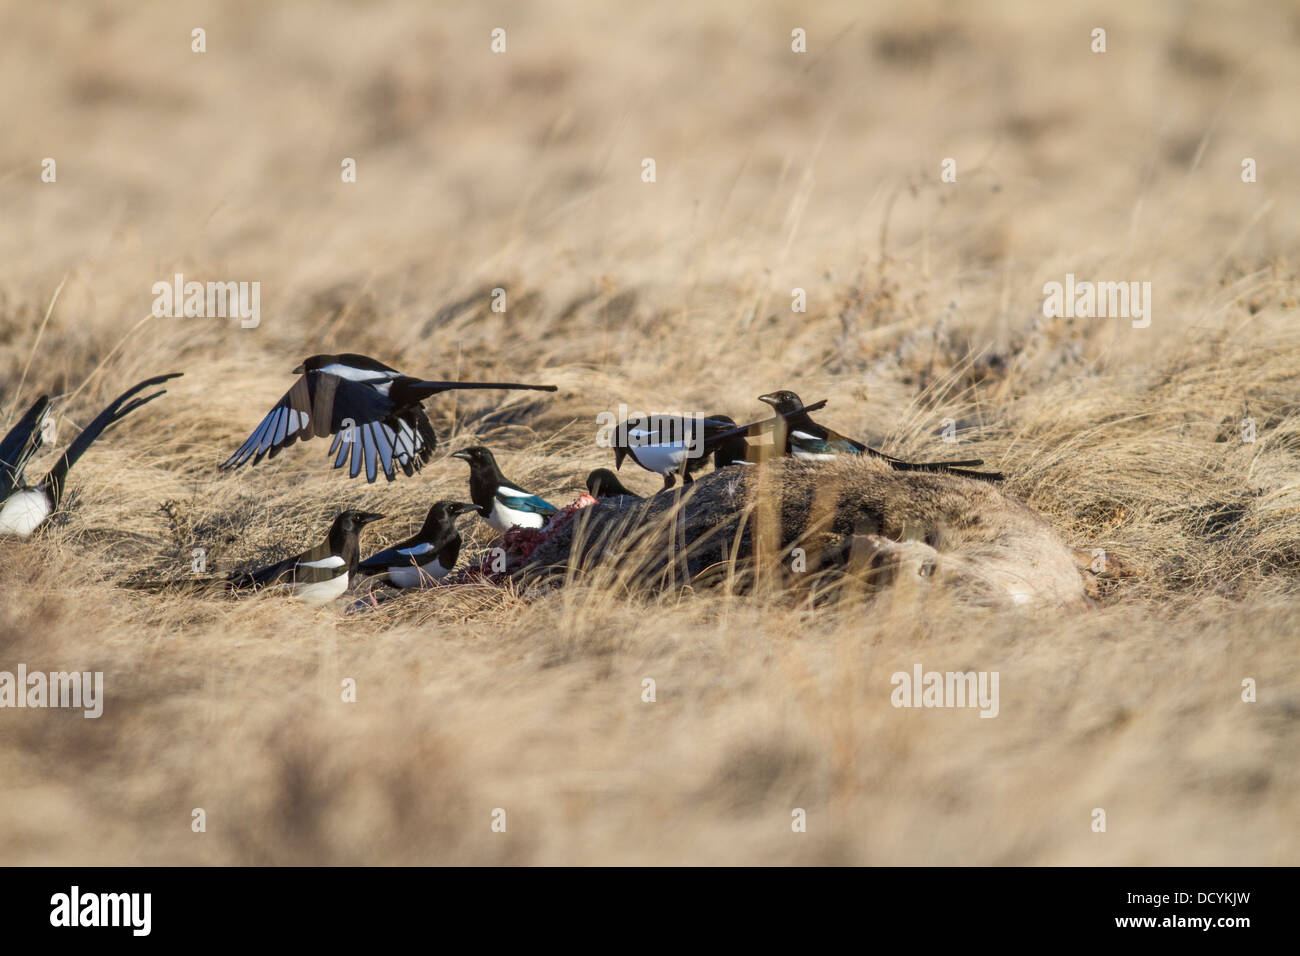 Black-billed Magpie (Pica hudsonia) Colorful group of scavenger birds, perched & landing on a deer carcass, - Stock Image